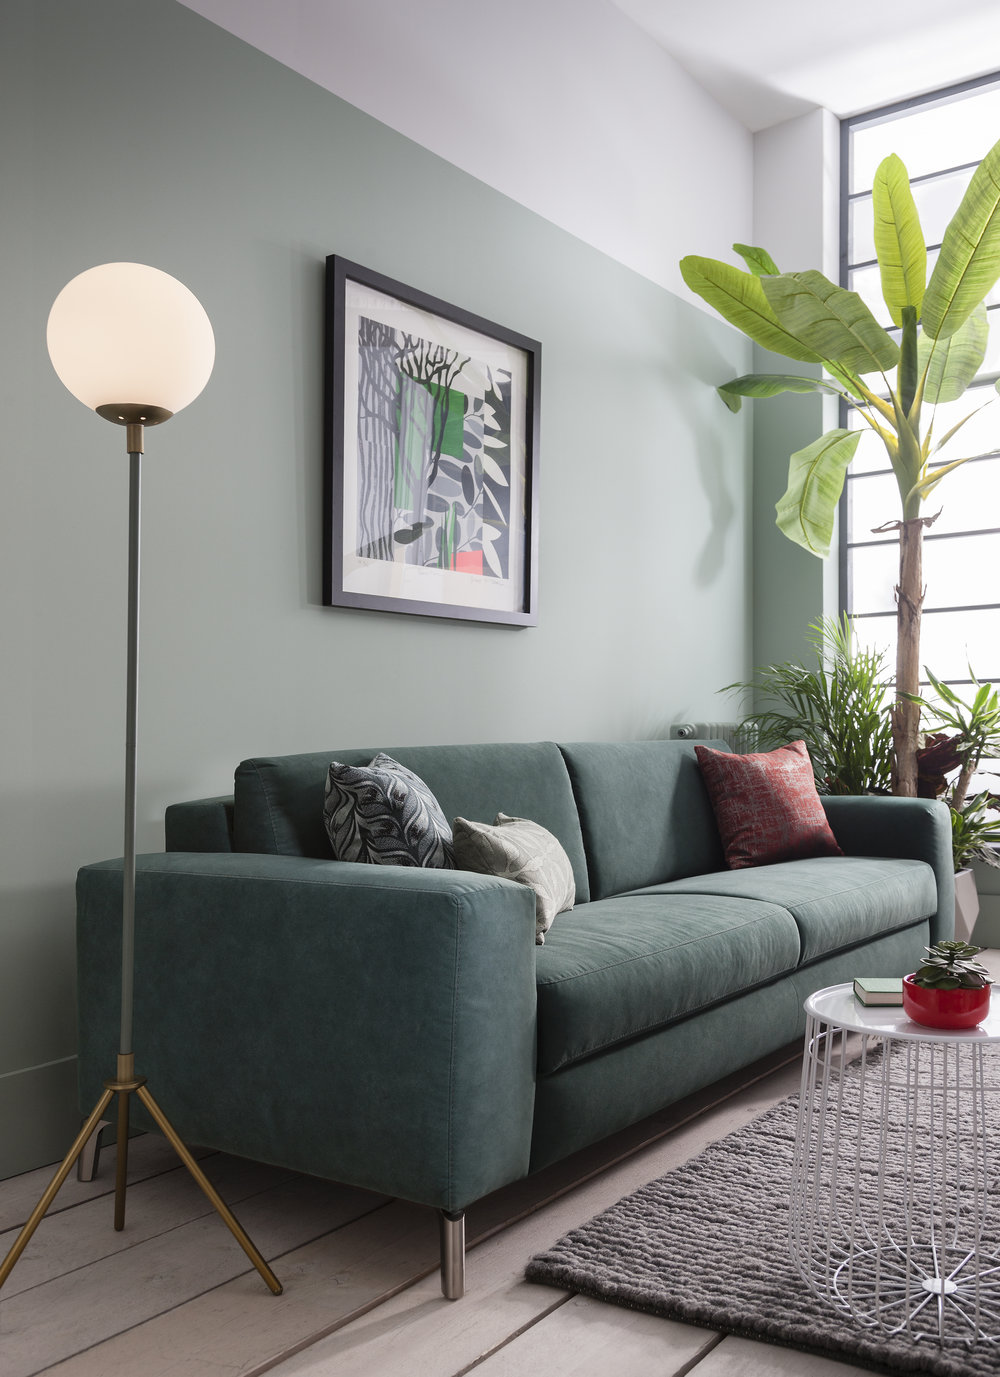 LIV for Interiors / The Green Trend